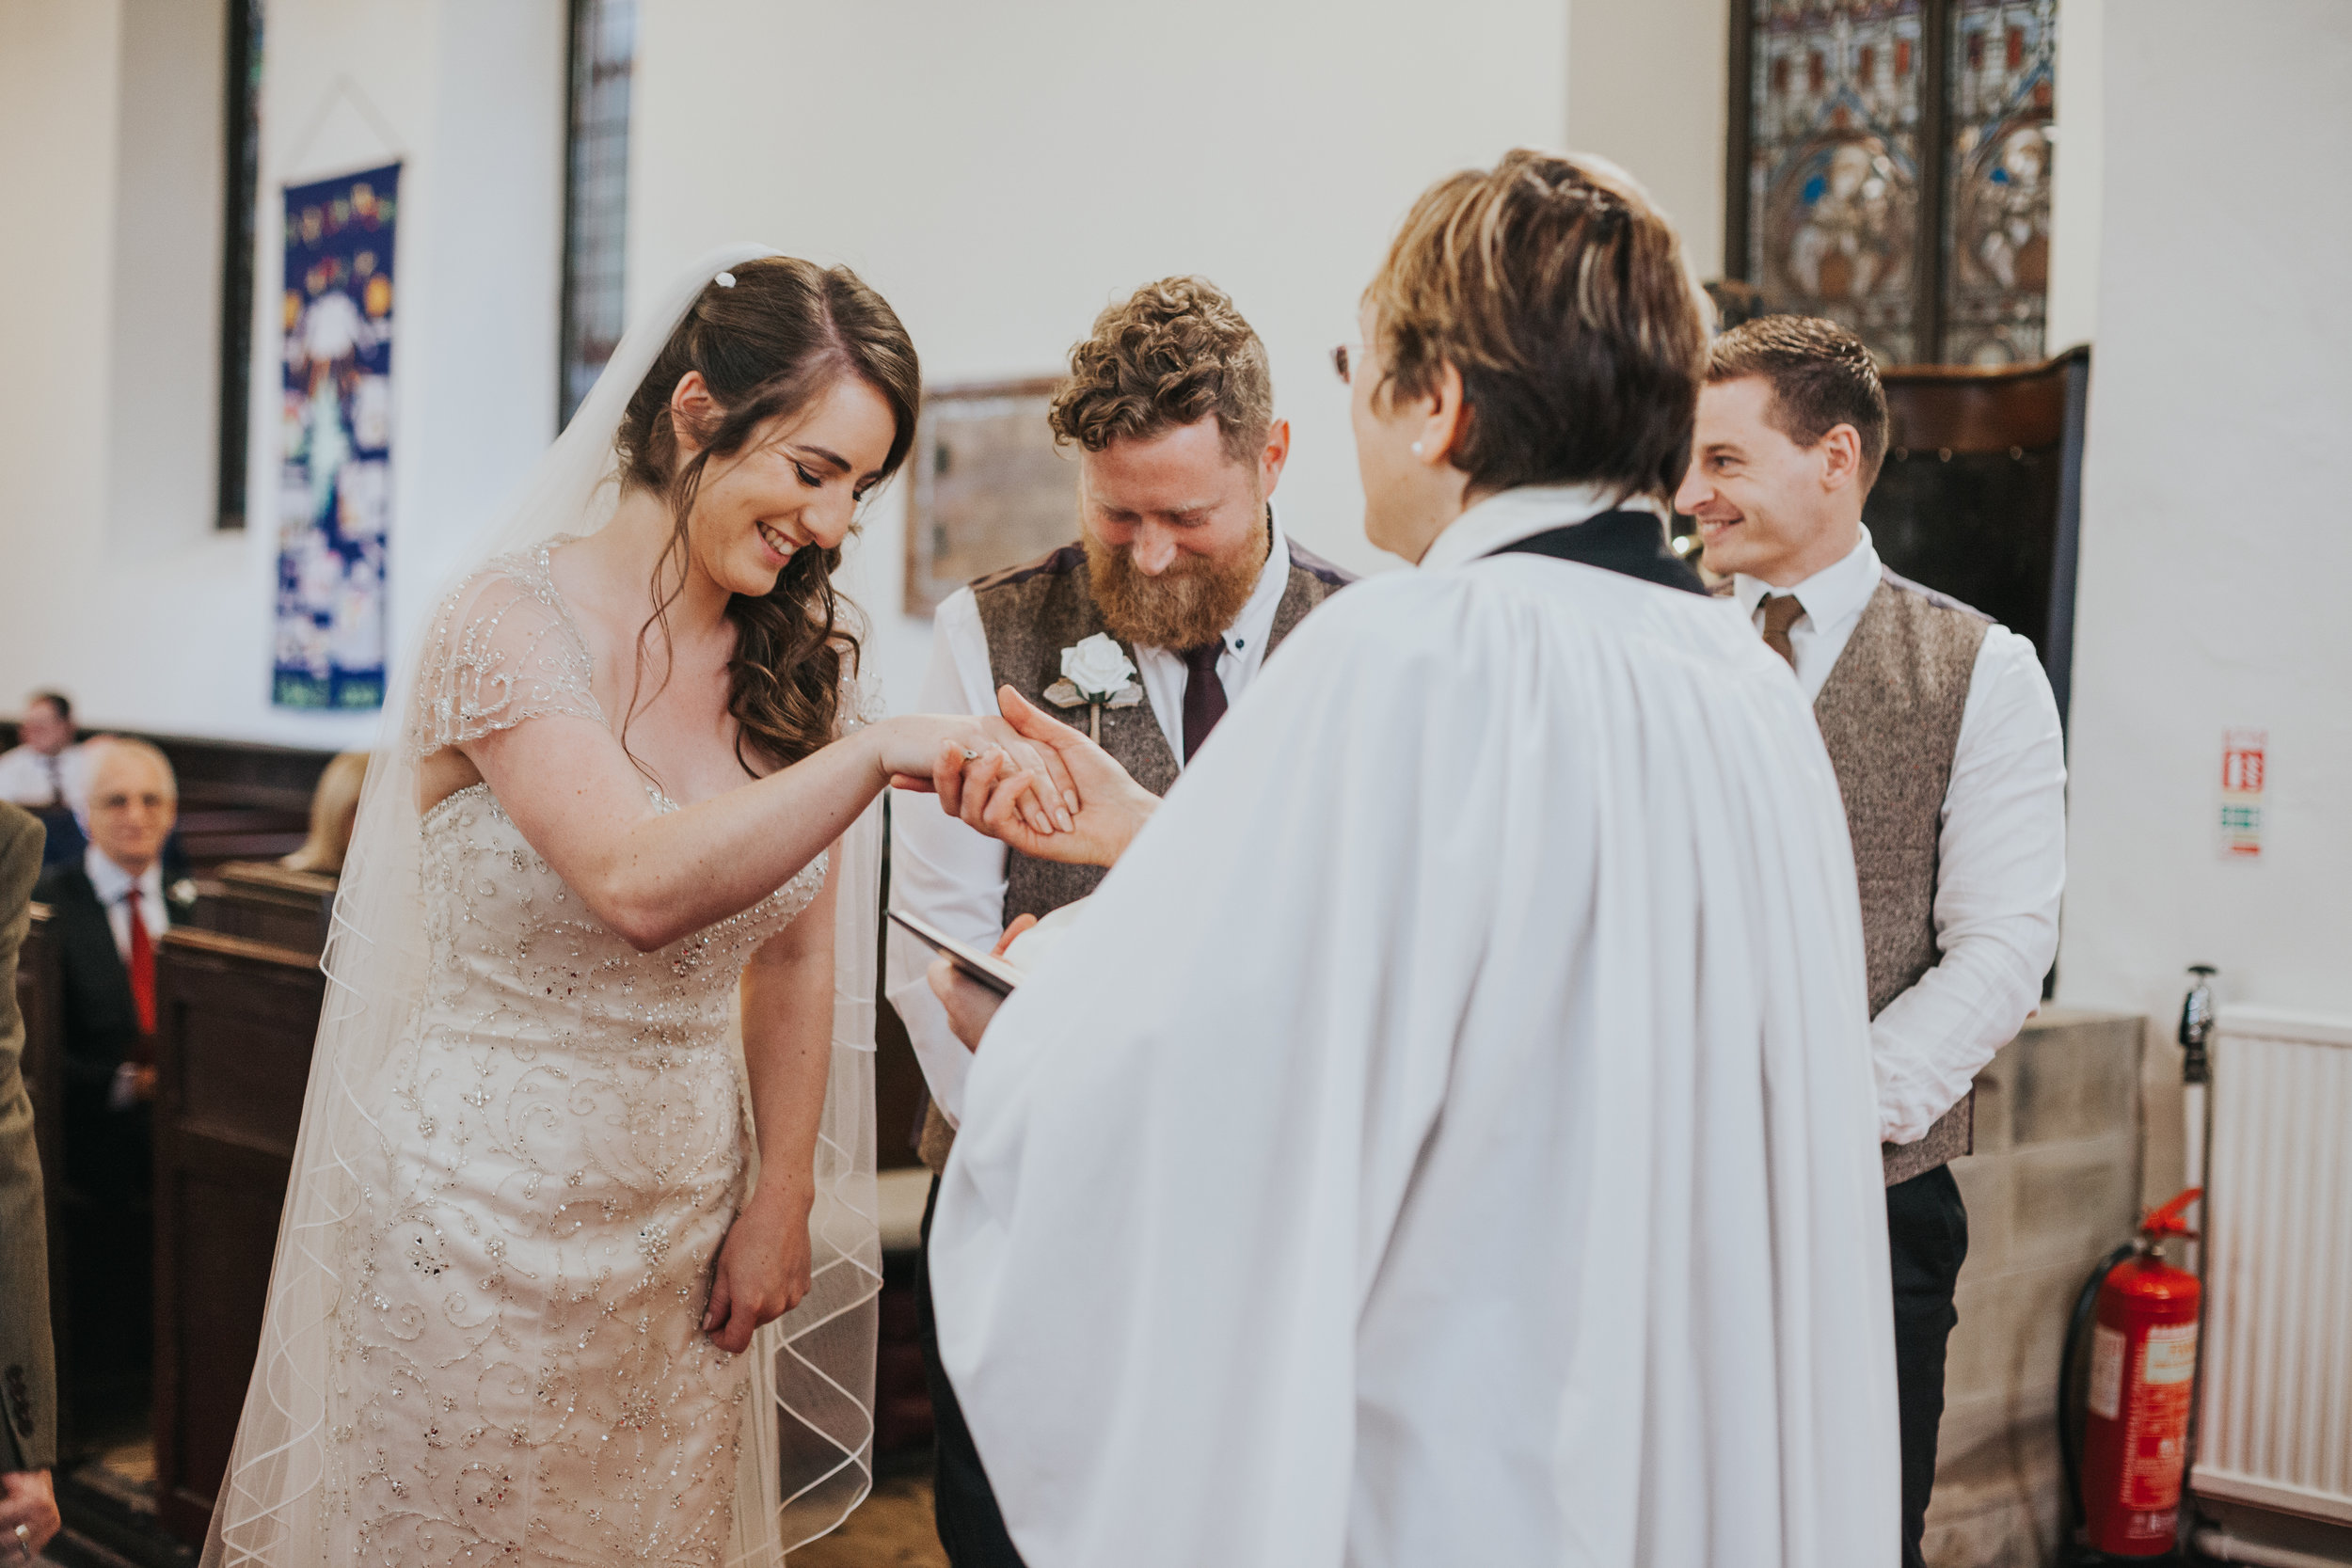 Female vicar holds bride's hand. Bride laughs.